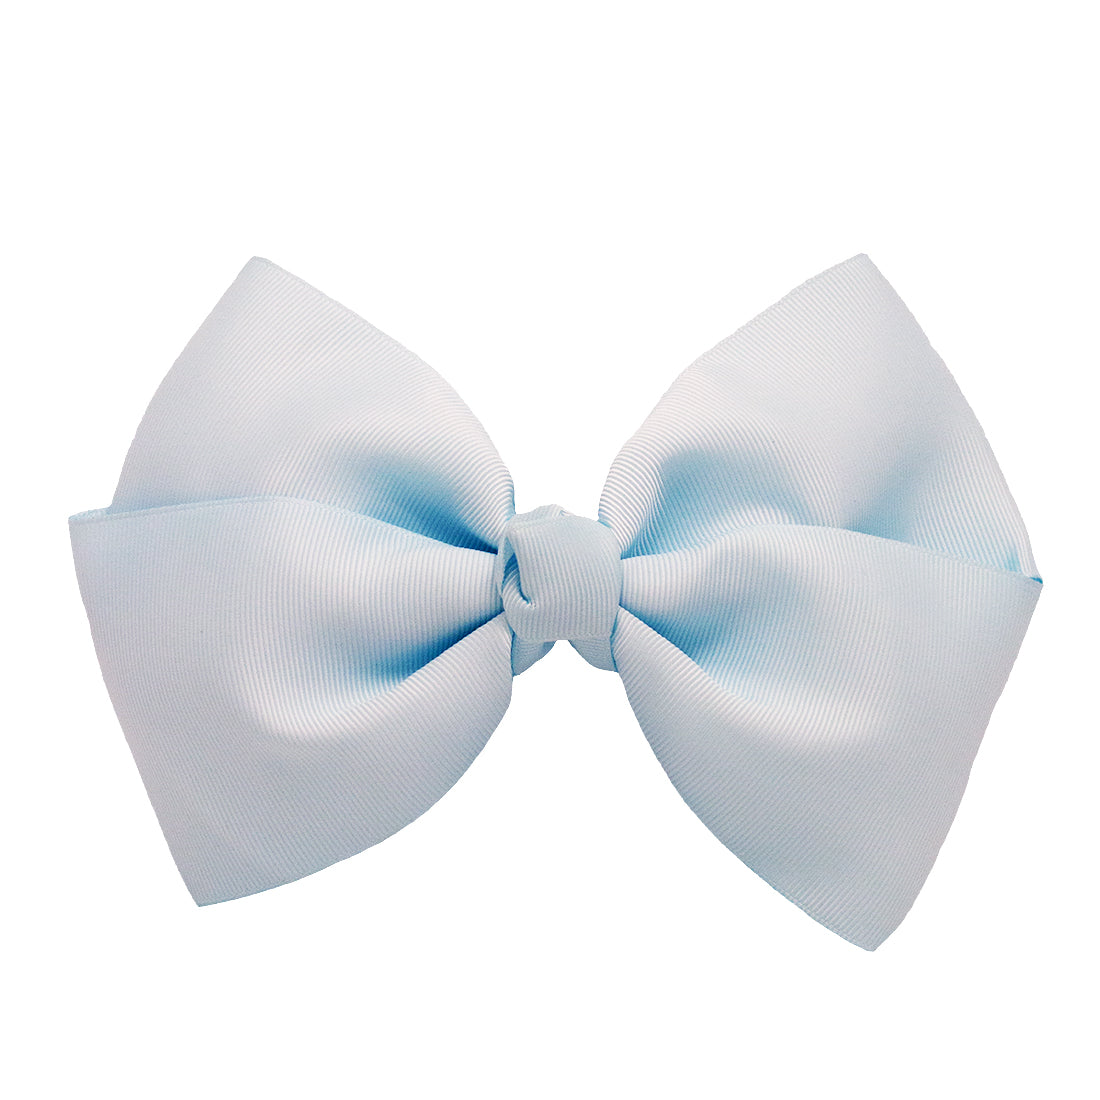 Mia Spirit Extra Large Grosgrain Bow Barrette - light blue color - designed by #MiaKaminski of Mia Beauty